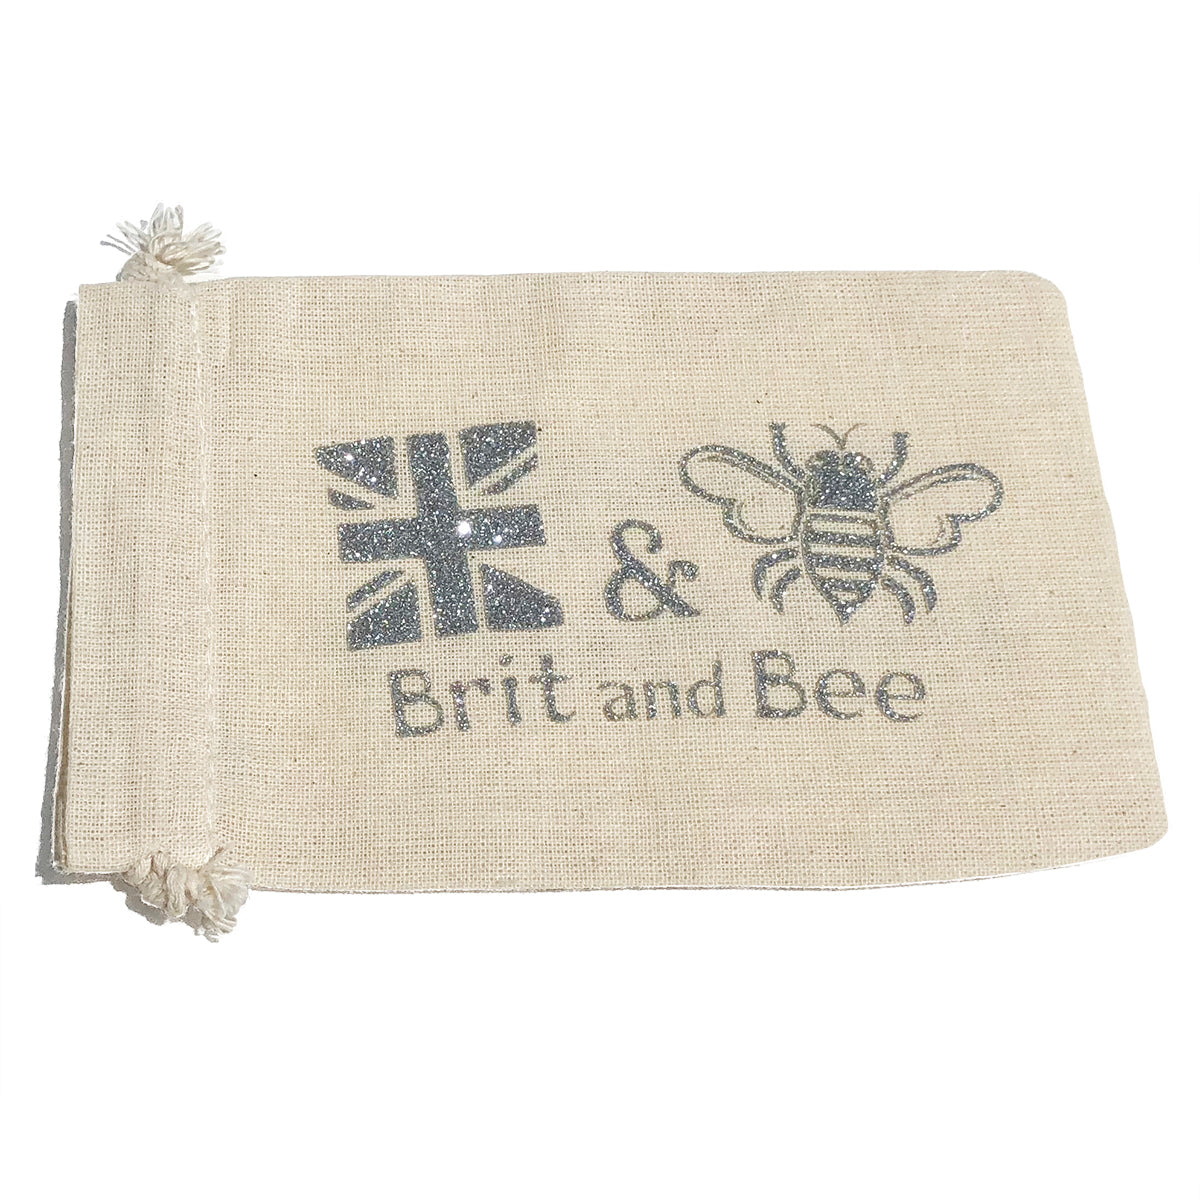 Brit and Bee Sorority Car Coasters - Sigma Sigma Sigma